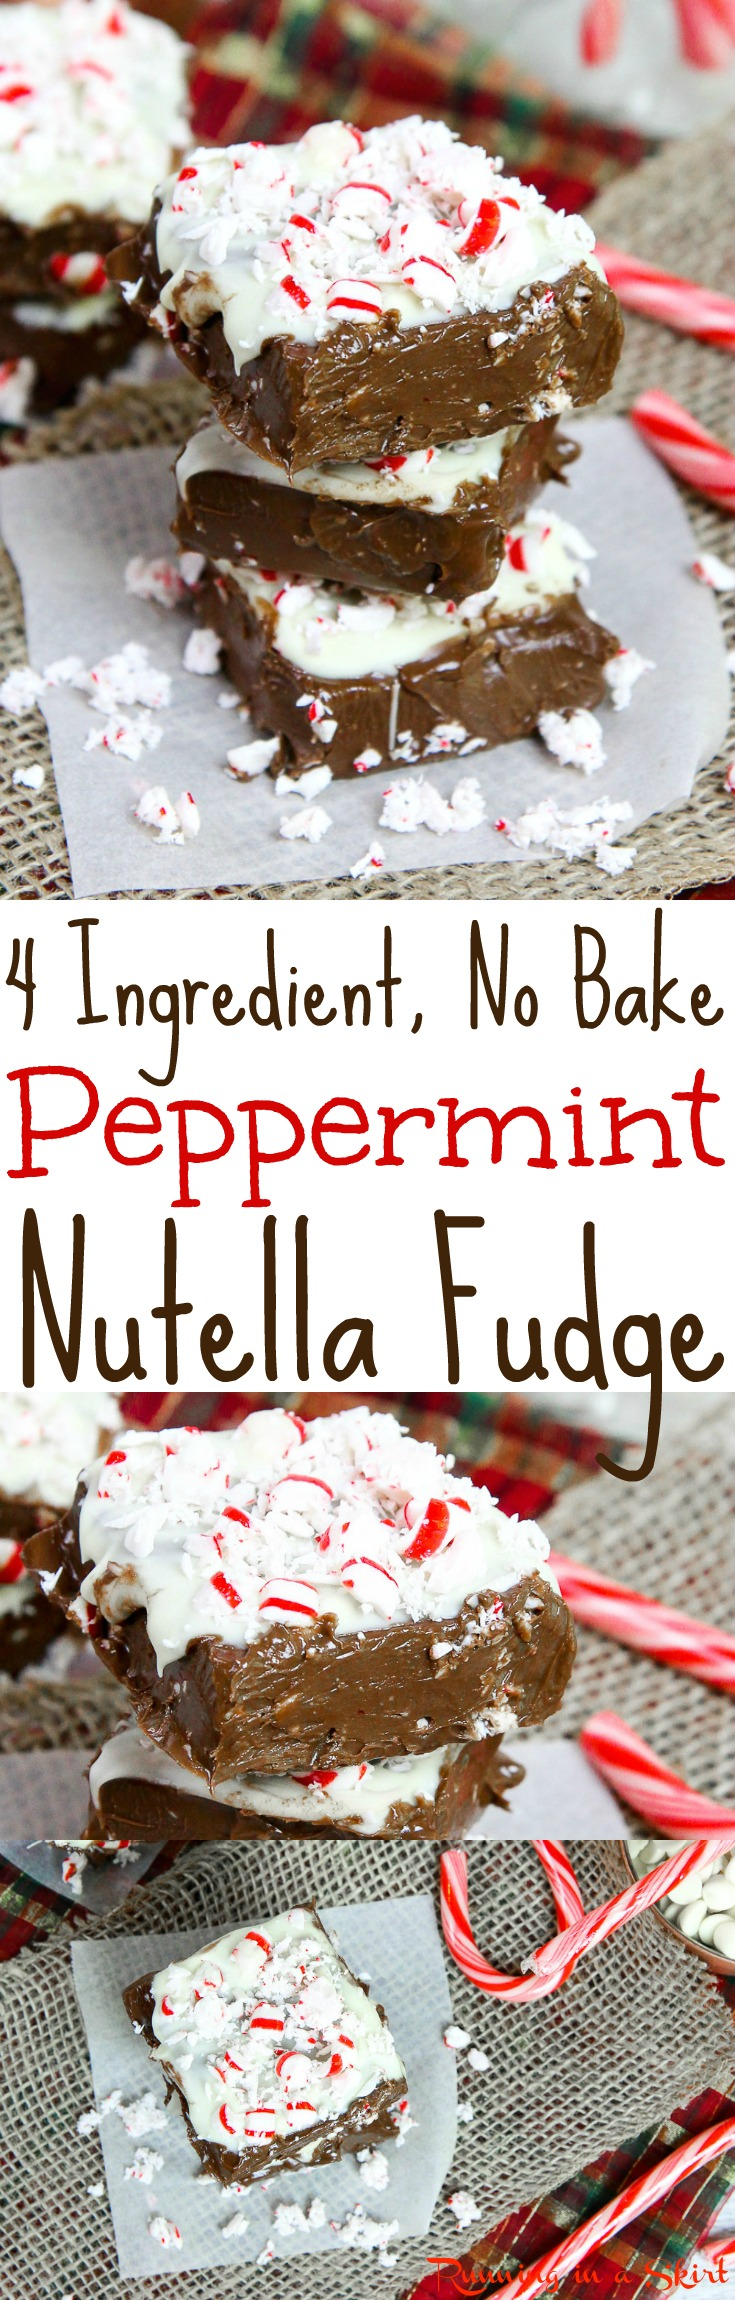 4 Ingredient, No Bake Peppermint Nutella Fudge recipe.  This easy healthy Christmas treat is made in the microwave and stores in the freezer.  Topped with candy canes. Vegan, dairy free, gluten free and paleo friendly. / Running in a Skirt via @juliewunder